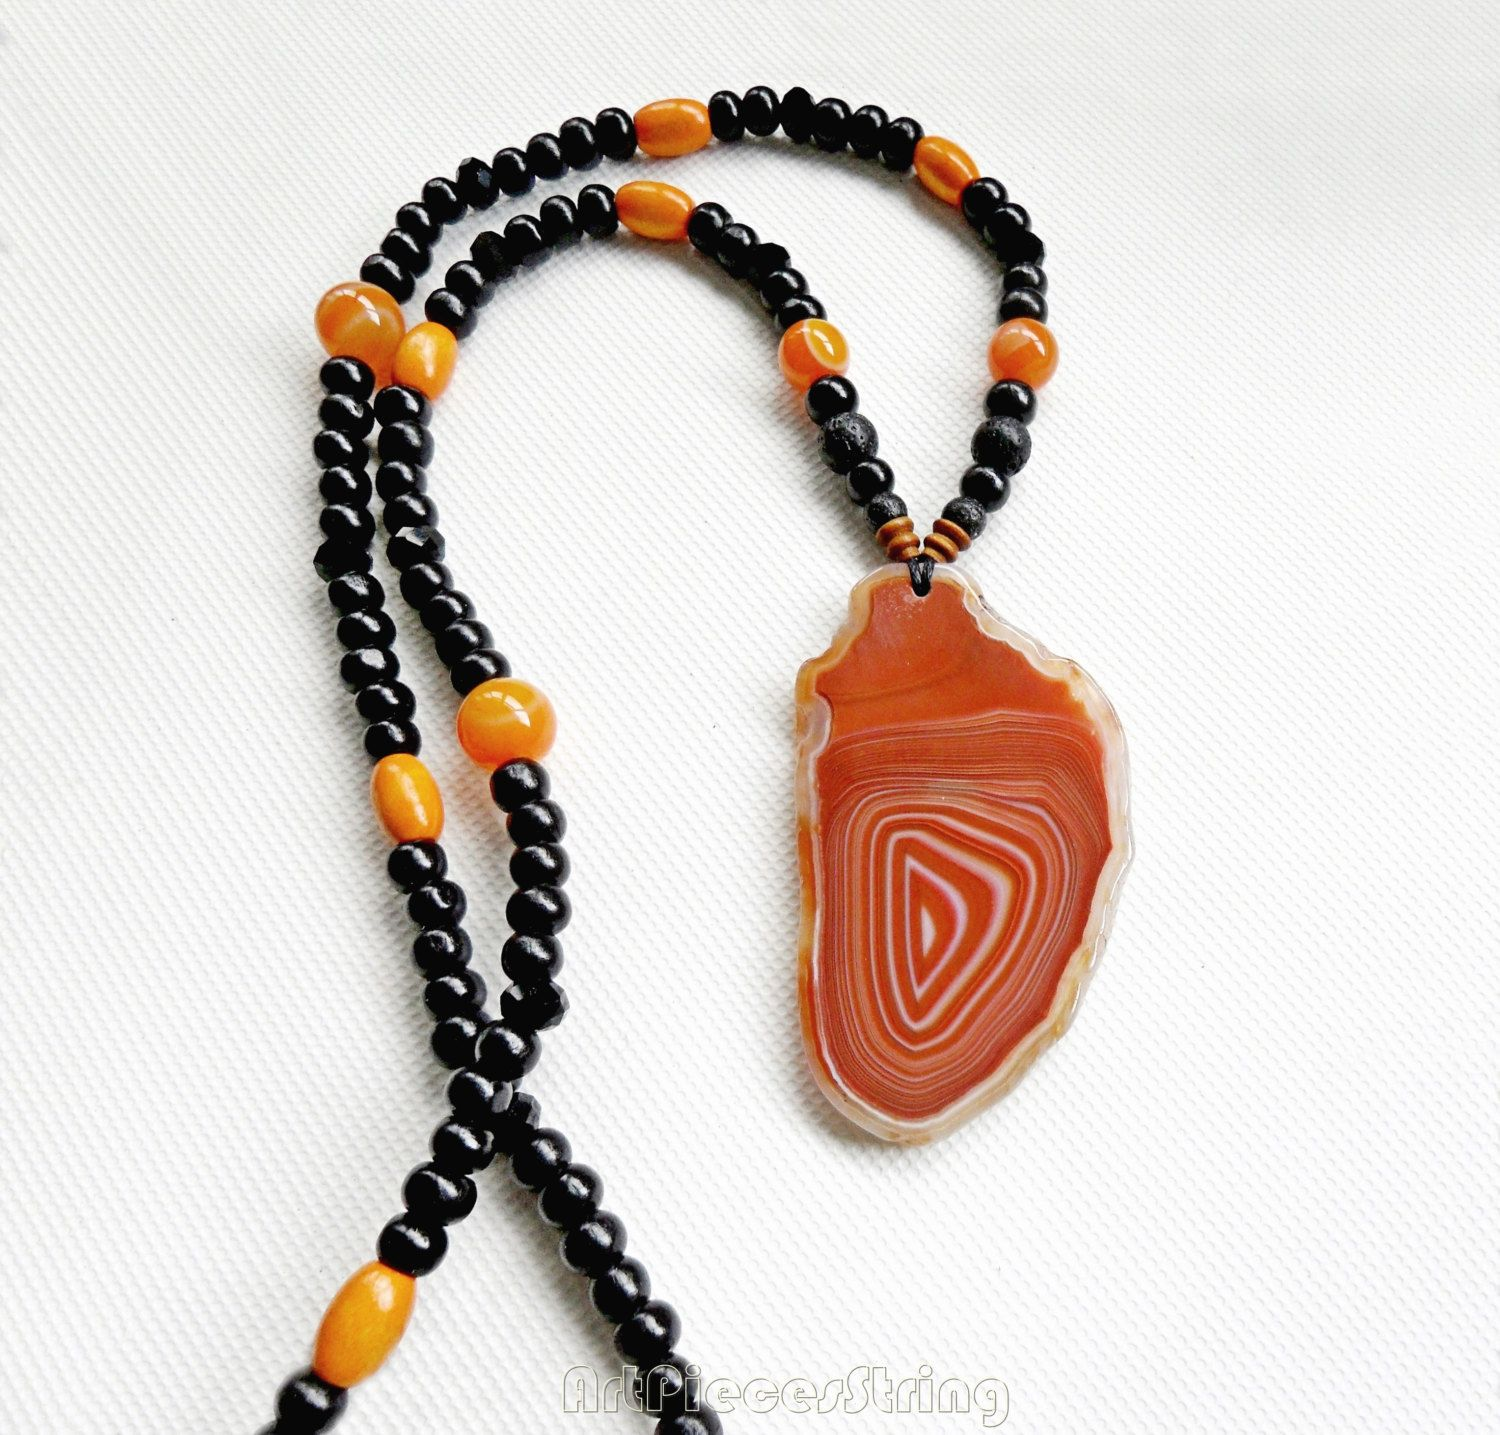 Spiral agate necklace beads, maze agate necklace orange slice, agate balls string long necklace, black orange agate two views sides choker, by ArtPiecesString on Etsy